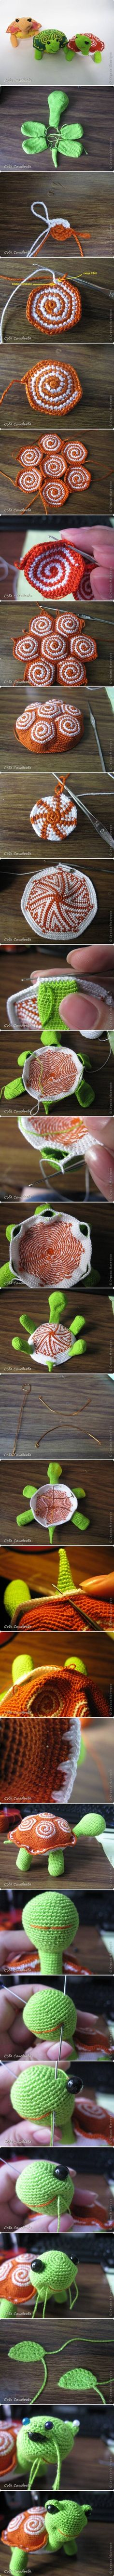 DIY Cute Crochet Turtles | iCreativeIdeas.com Like Us on Facebook ==> https://www.facebook.com/icreativeideas